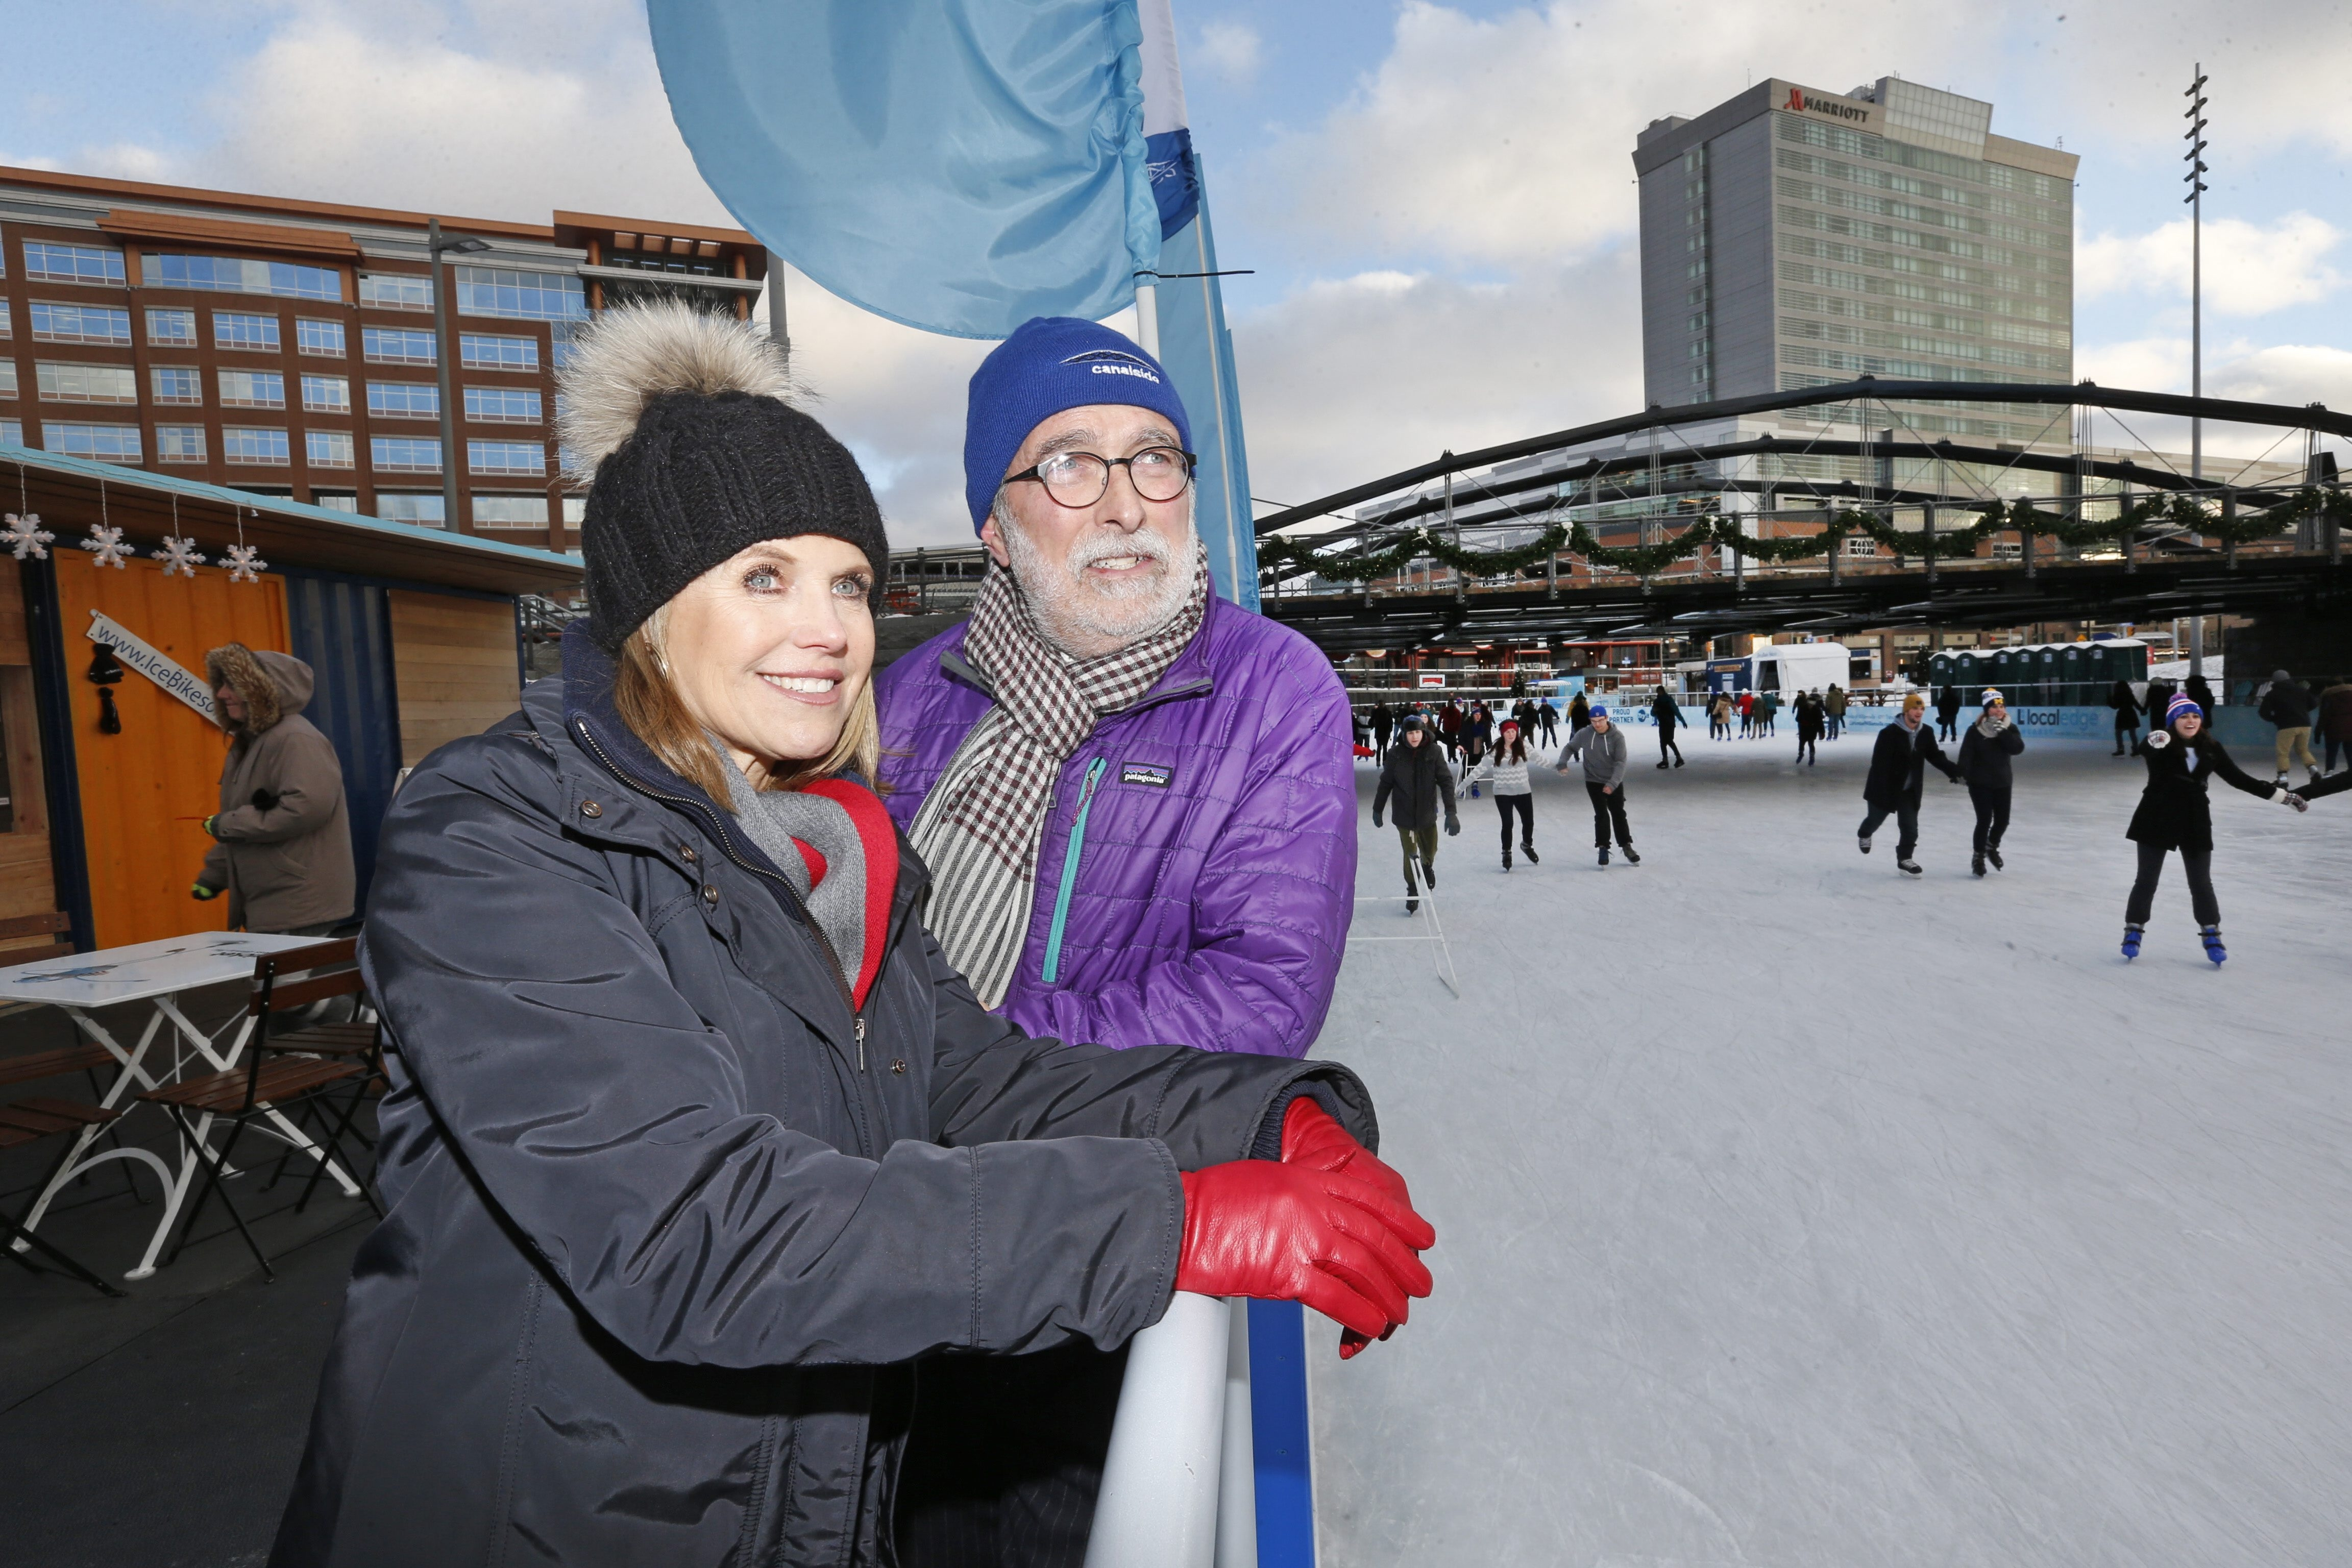 Katie Couric got a tour of the ice rink from Robert Gioia, chairman of Erie County Harbor Development Corp., with her new Buffalo hat at Canalside in Buffalo on Tuesday.